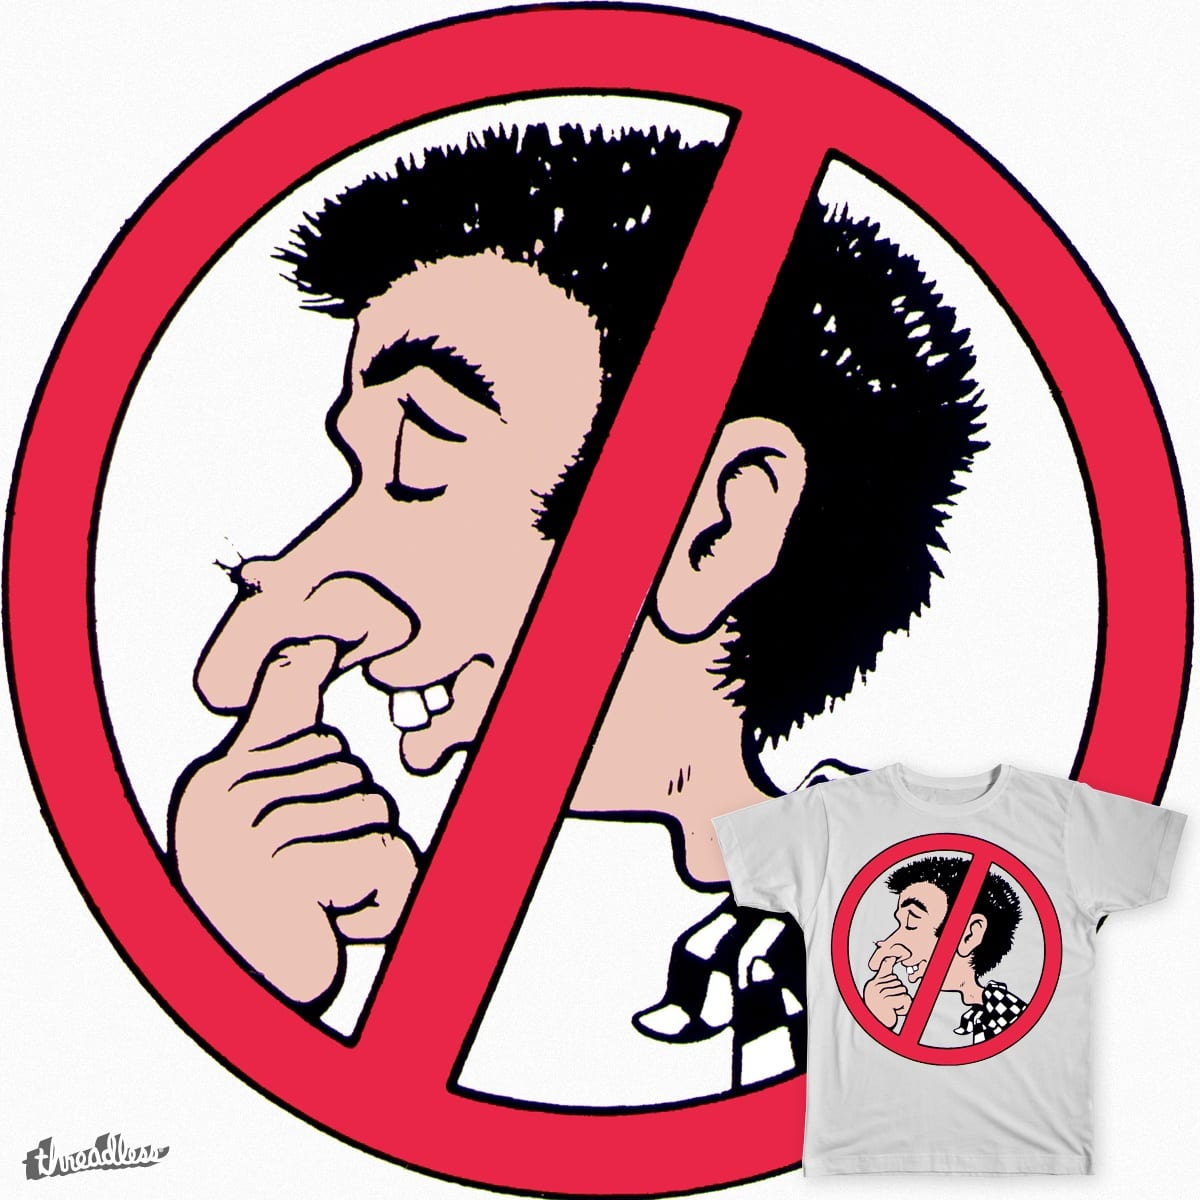 Score No Nose Pickers By Desotodesigns On Threadless